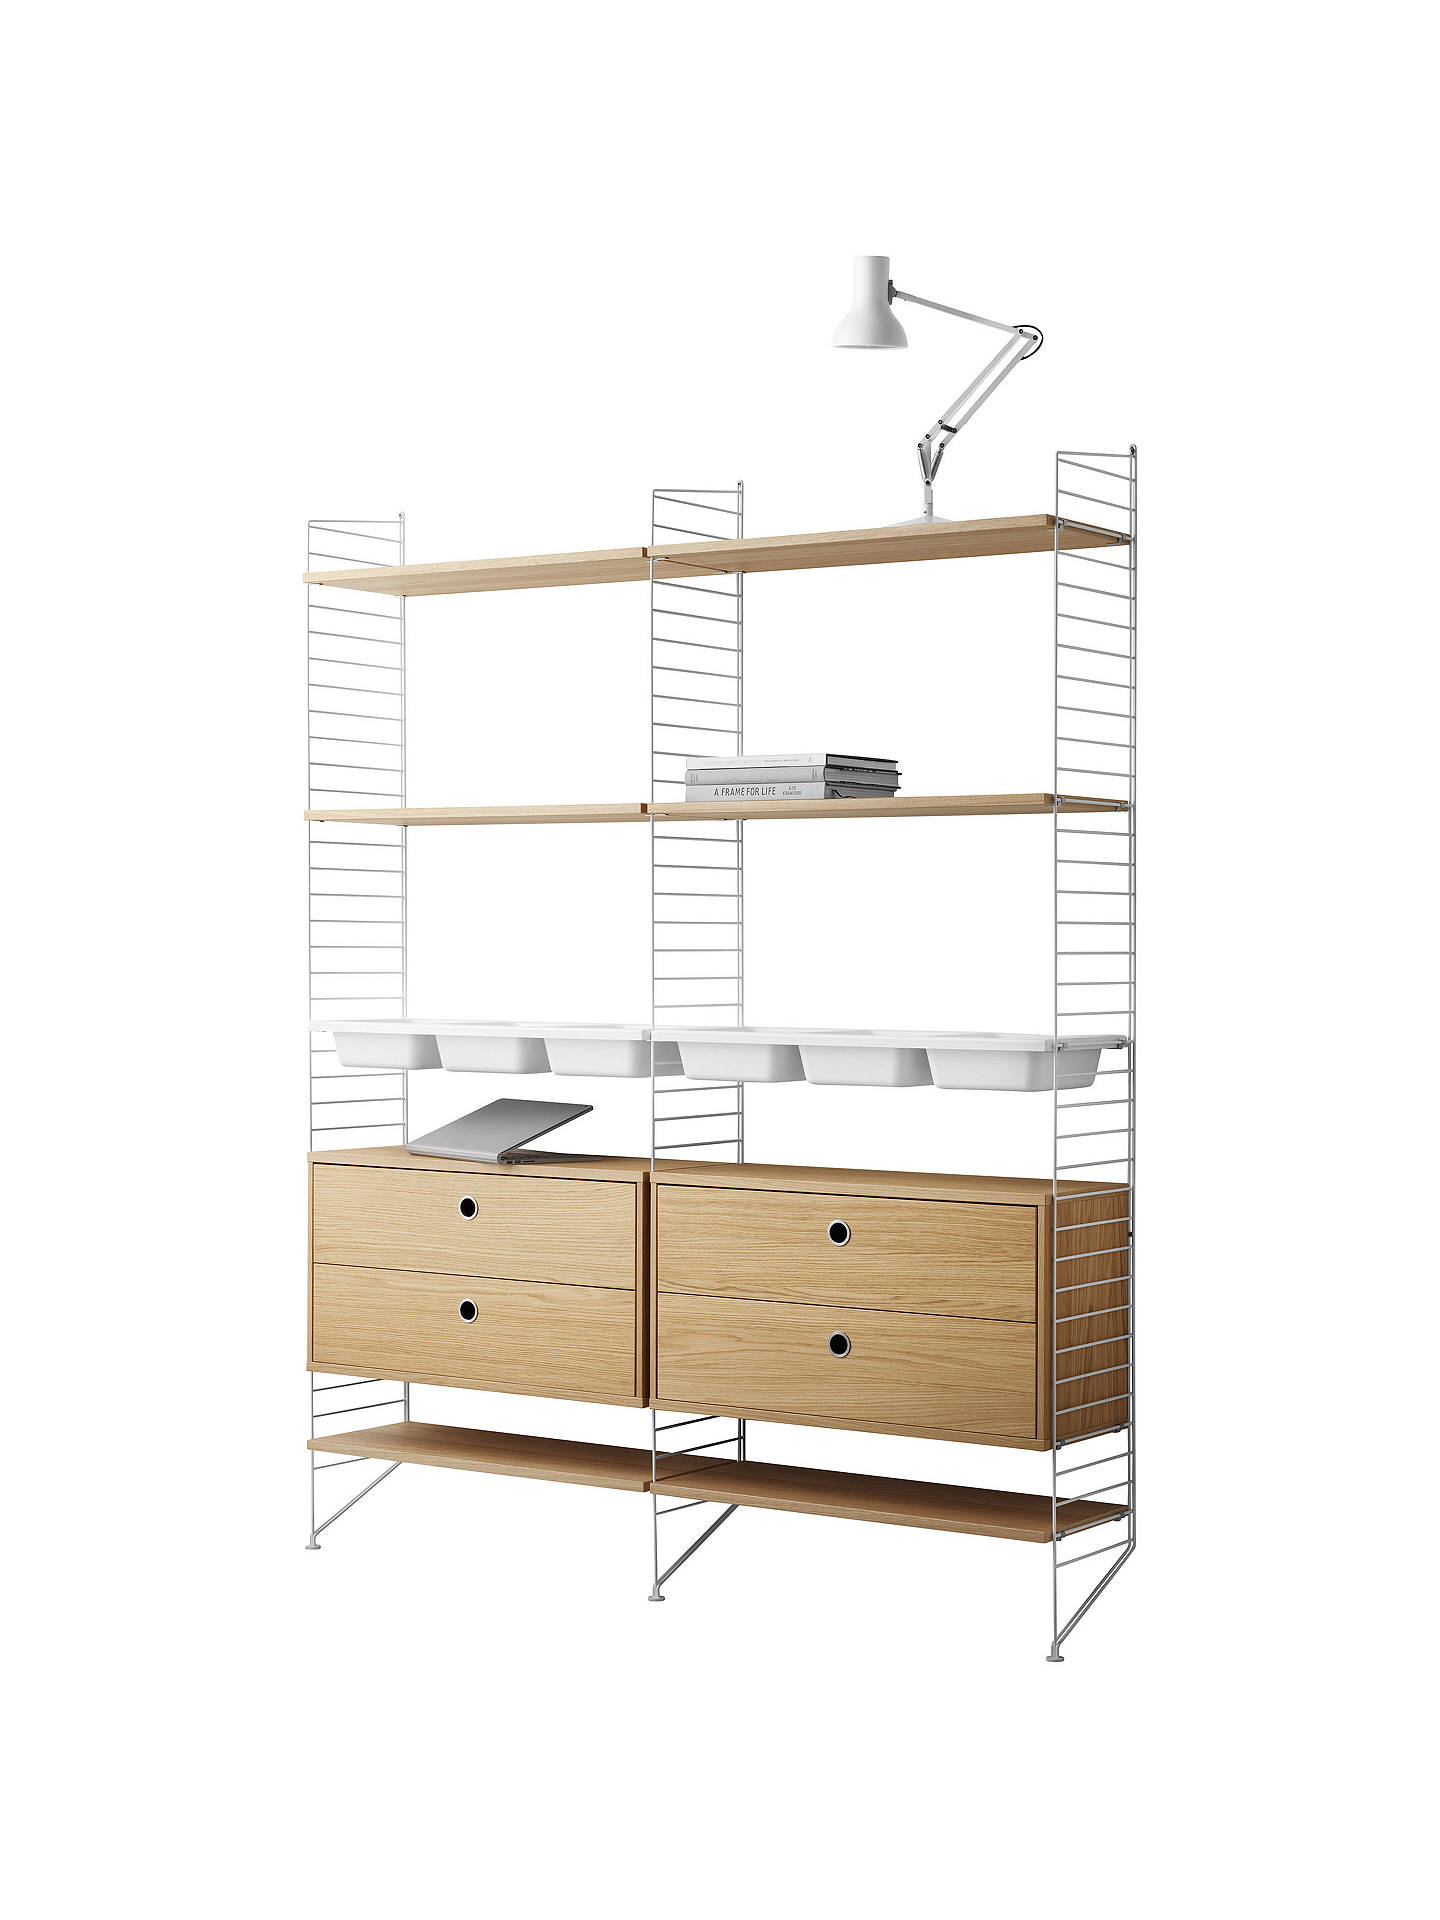 Buystring Shelving Unit with 2 Drawer Chest, 6 Shelves, 3 Bowl Shelf and Wall Fastened Side Racks, Oak/White Online at johnlewis.com